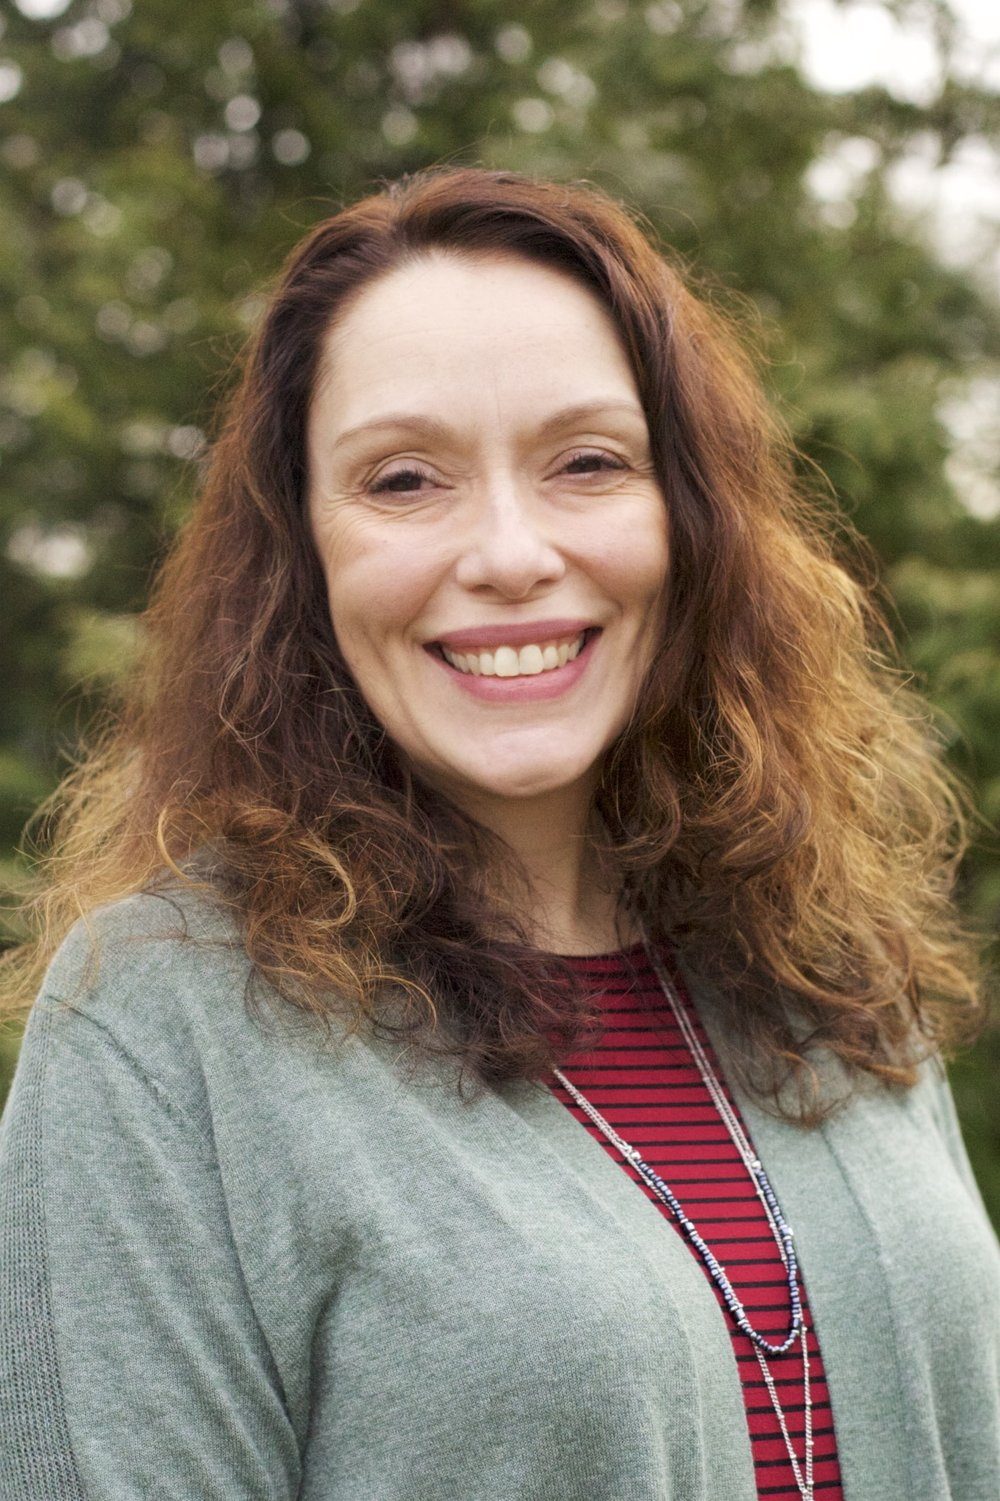 Wendy naiman, MA, LMFT  , Therapist    ∙  Children, Adolescents and Adults (Ages 10+)  ∙  Couples & Families  ∙  Family of Origin Issues  ∙  Parenting  ∙  Women's Issues  ∙  Relationships  ∙  Spirituality  ∙  Life Transitions & Adjustments  ∙  Coping With Health Issues & Chronic Illness  ∙  Anxiety  ∙  Depression  ∙  LGBTQ+ Issues  ∙  Creative & Expressive Arts Therapy ∙ CBT & ACT